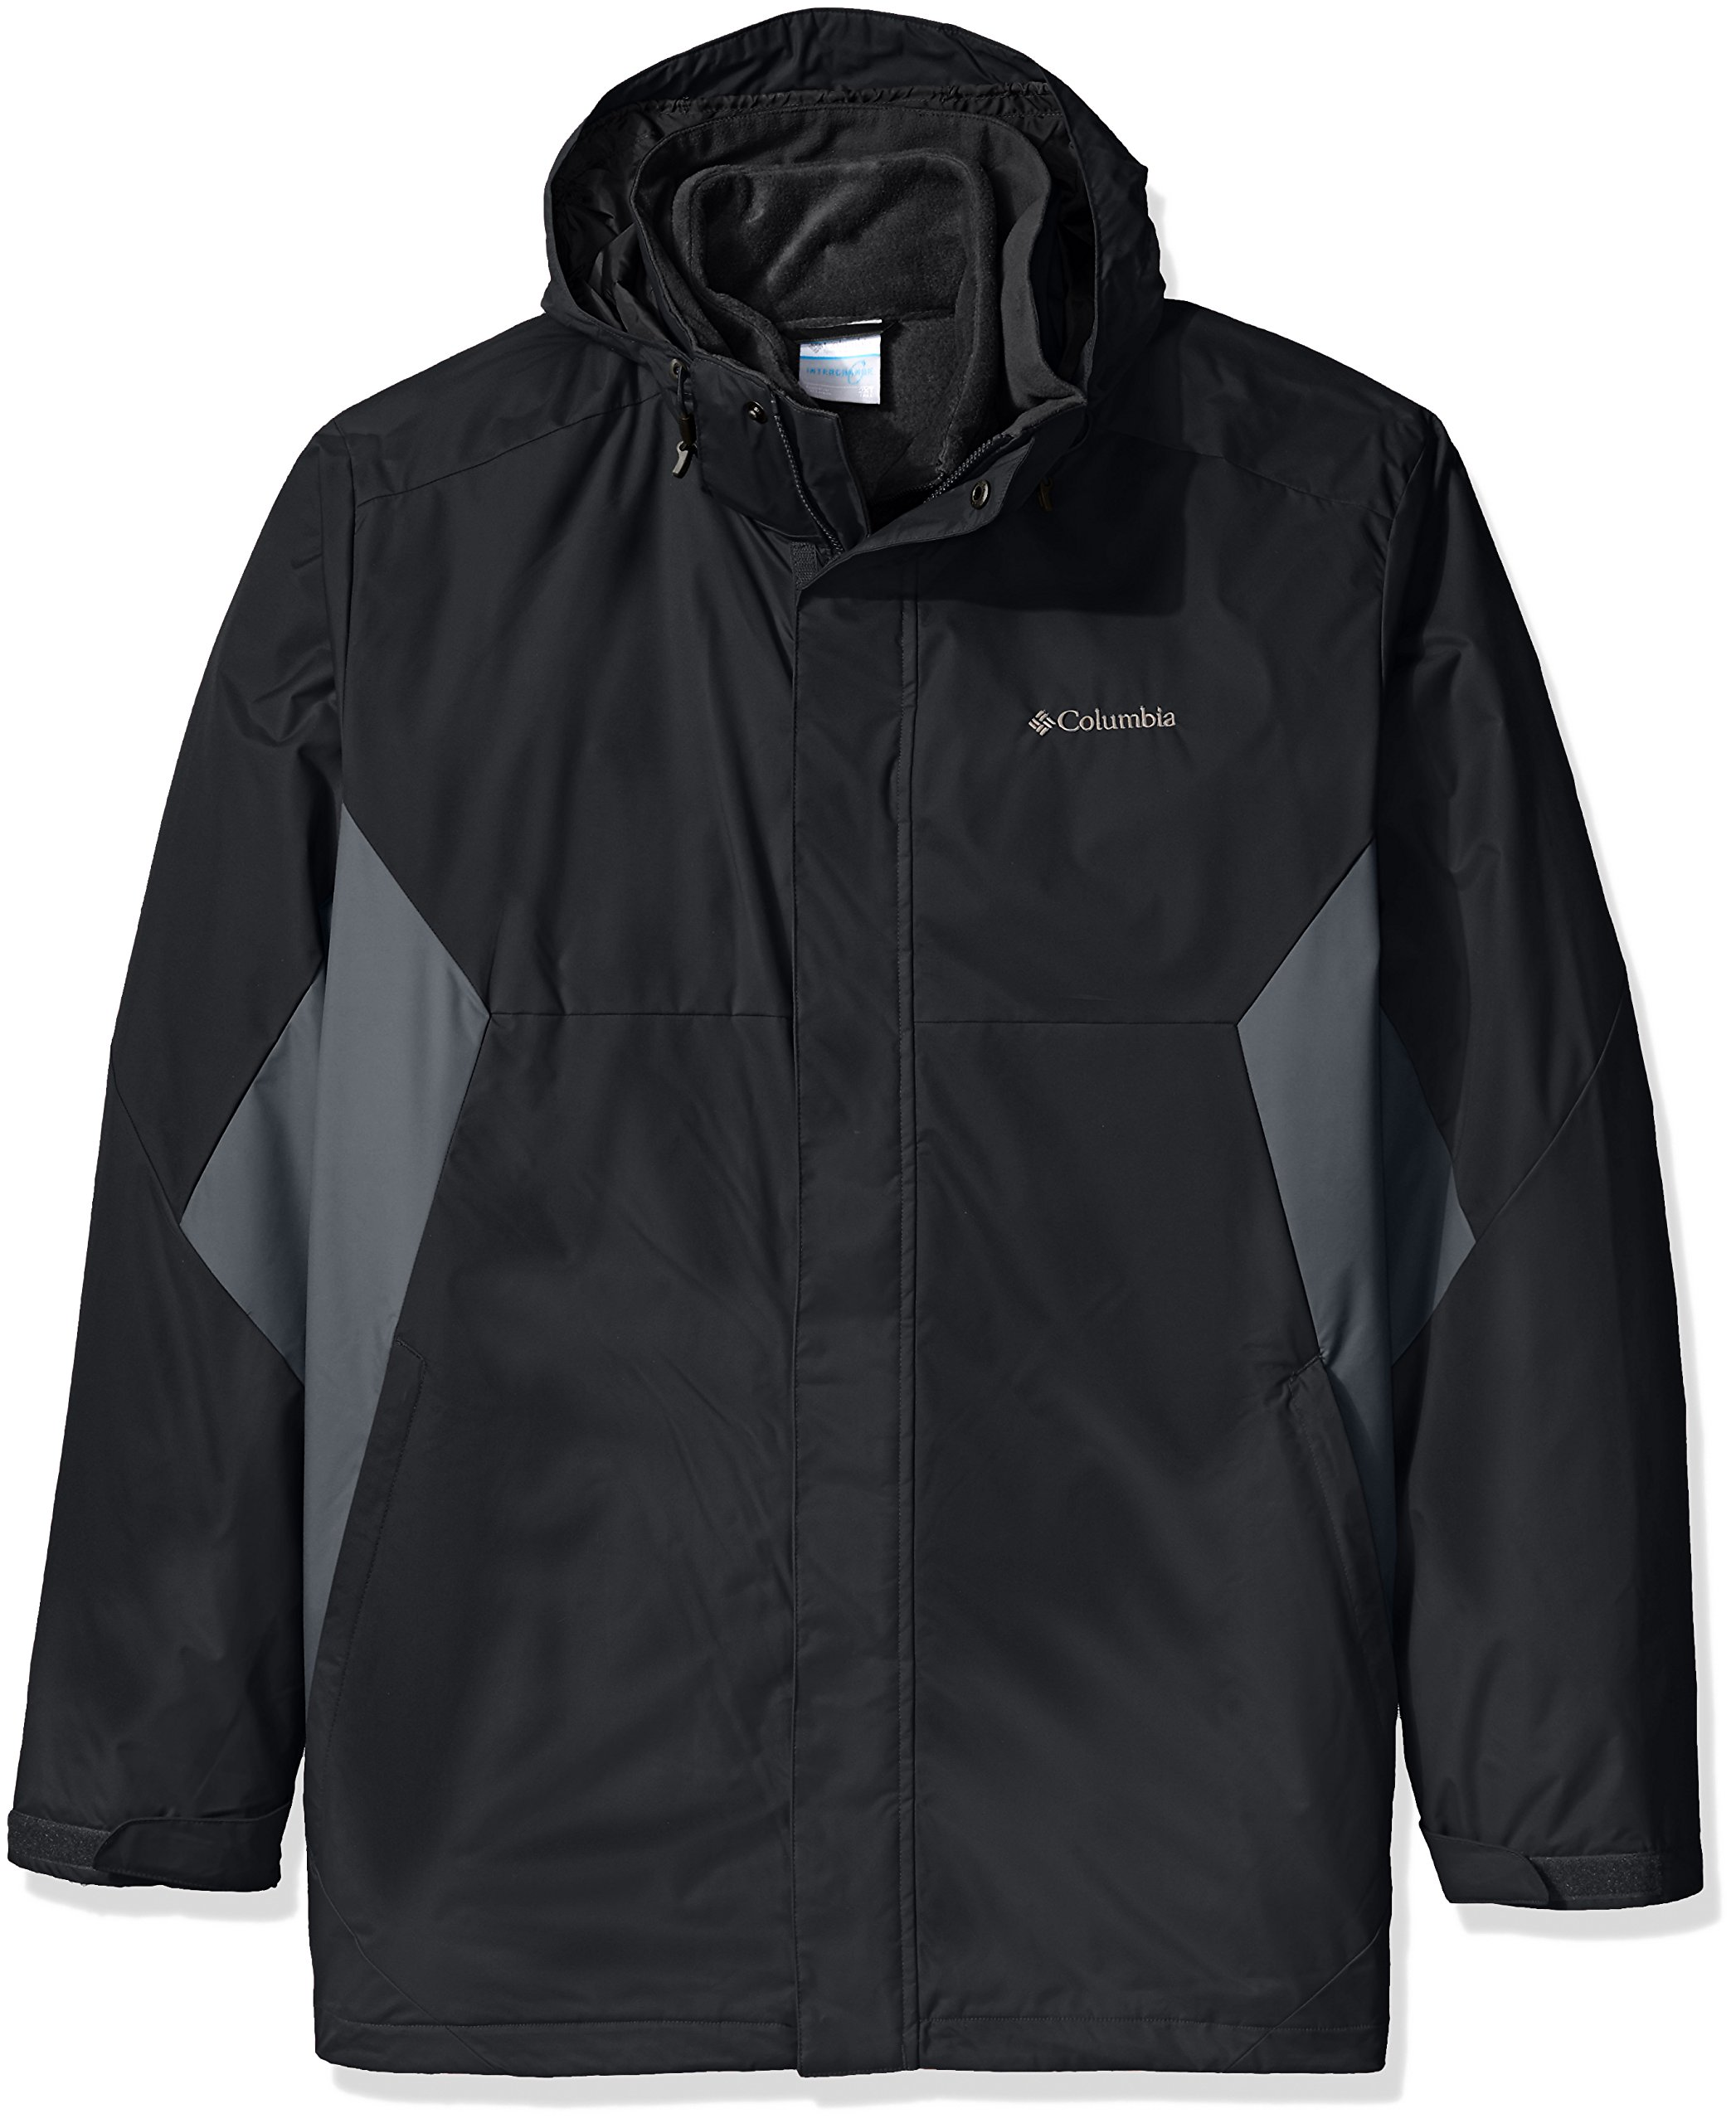 Columbia Men's Big-Tall Big & Tall Eager Air Interchange 3-In-1 Jacket, Black, Graphite, 4X